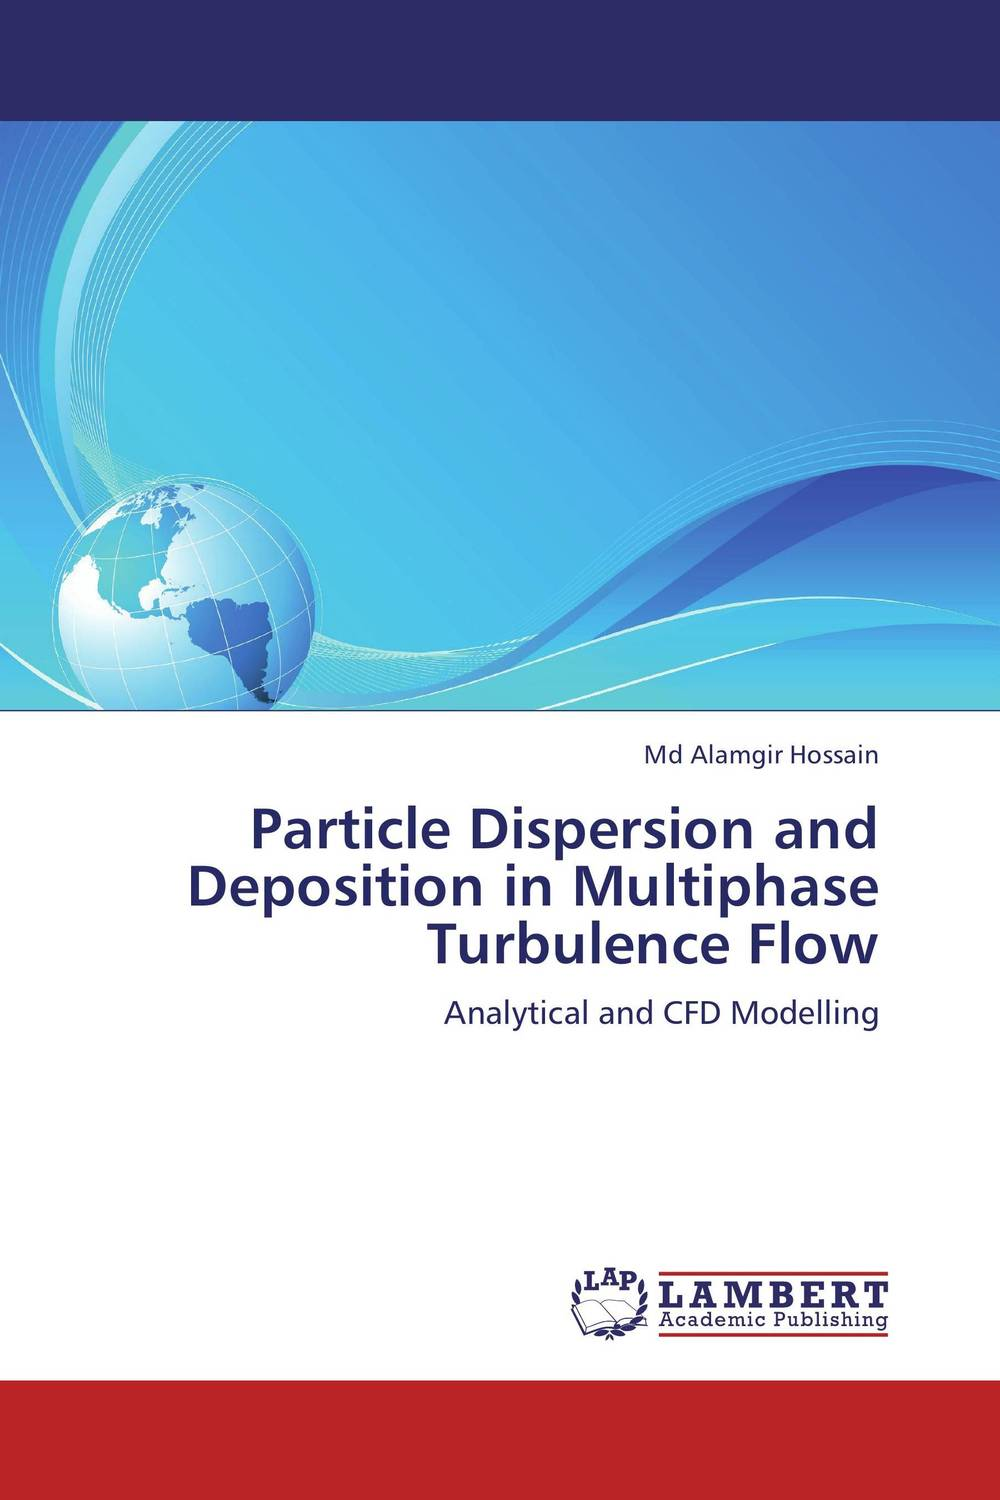 Particle Dispersion and Deposition in Multiphase Turbulence Flow esam jassim hydrate formation and deposition in natural gas flow line